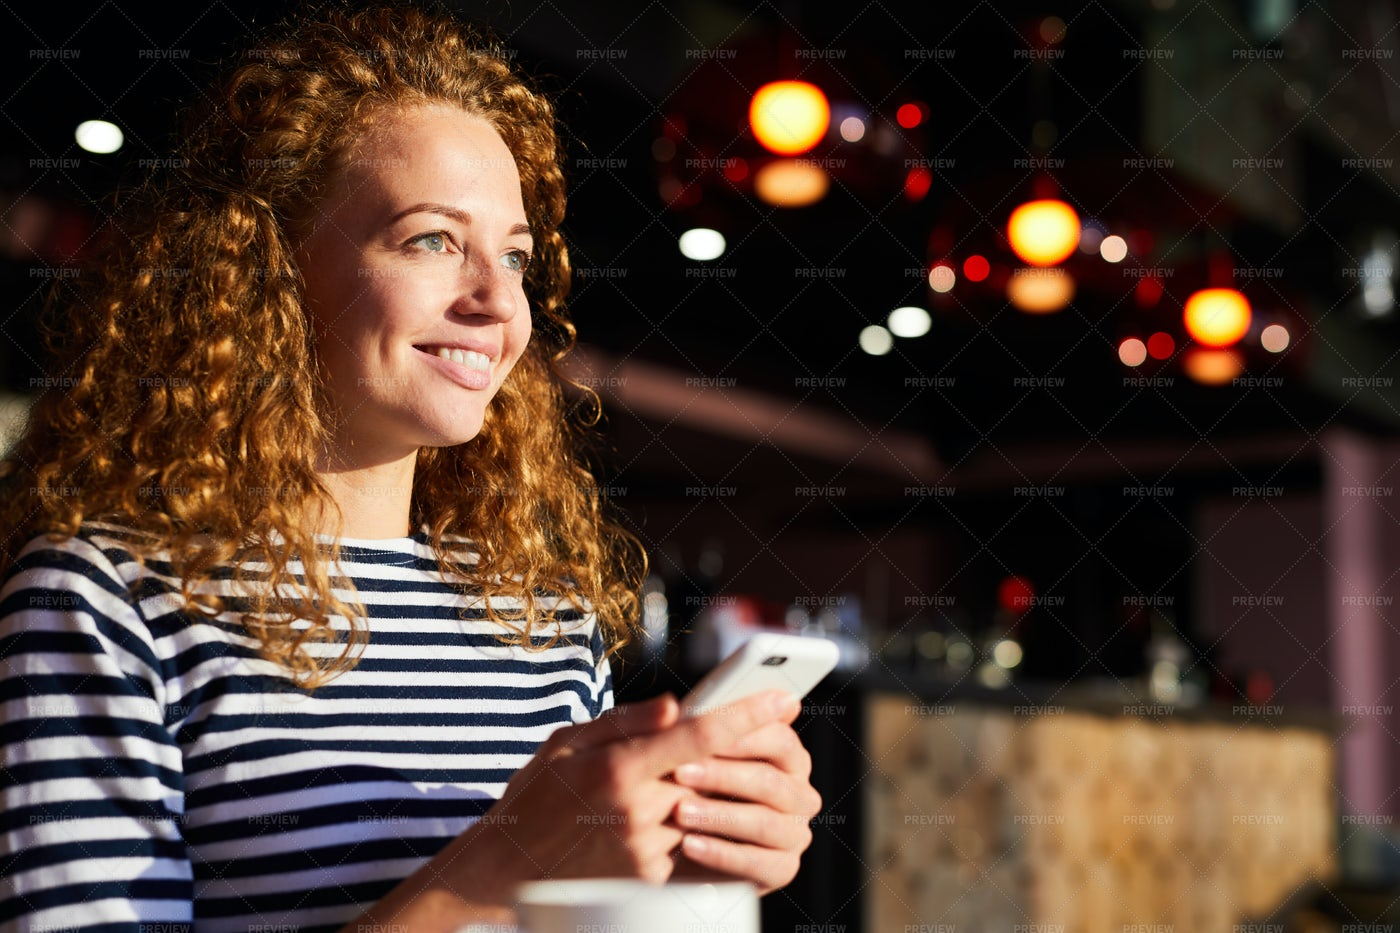 Excited Girl Reading Sms From Boyfriend: Stock Photos